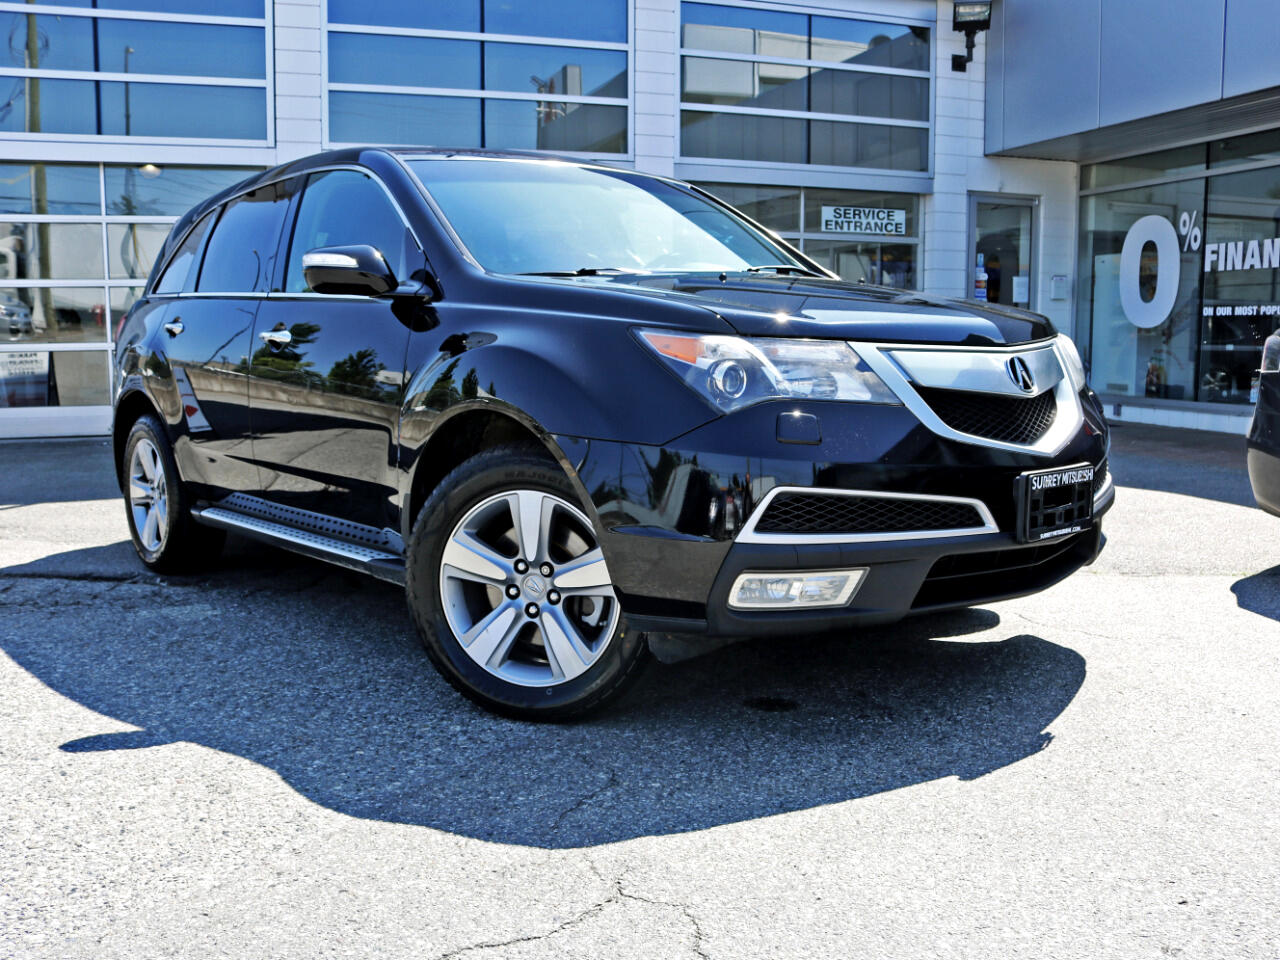 2012 Acura MDX Low KMS SH-AWD Loaded Leather Sunroof 7 Passenger